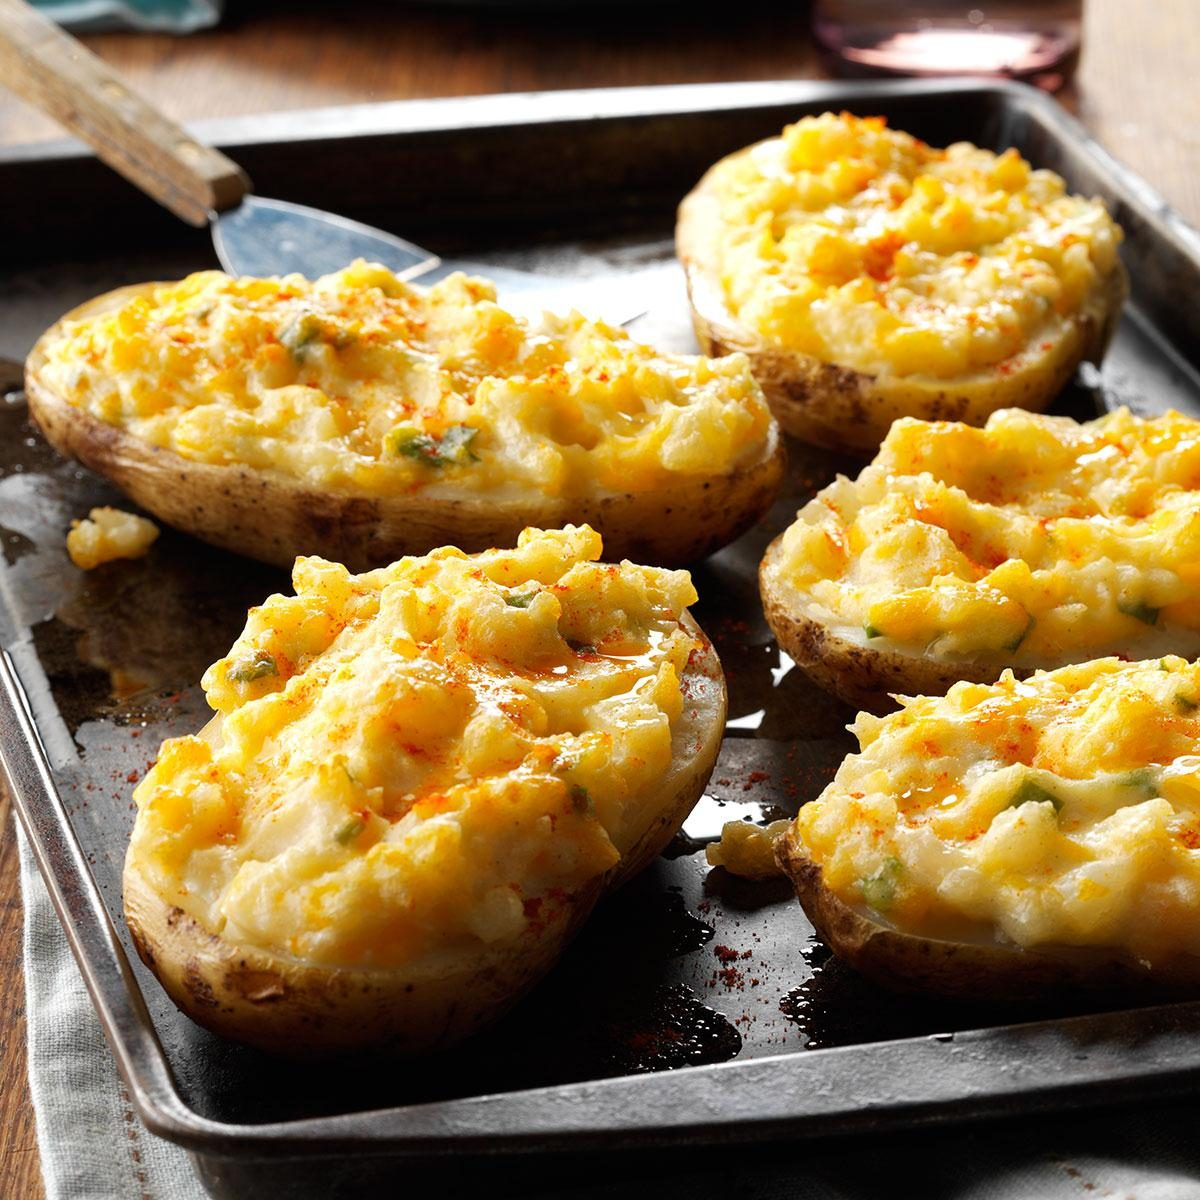 Cheesy Stuffed Baked Potatoes Recipe | Taste of Home